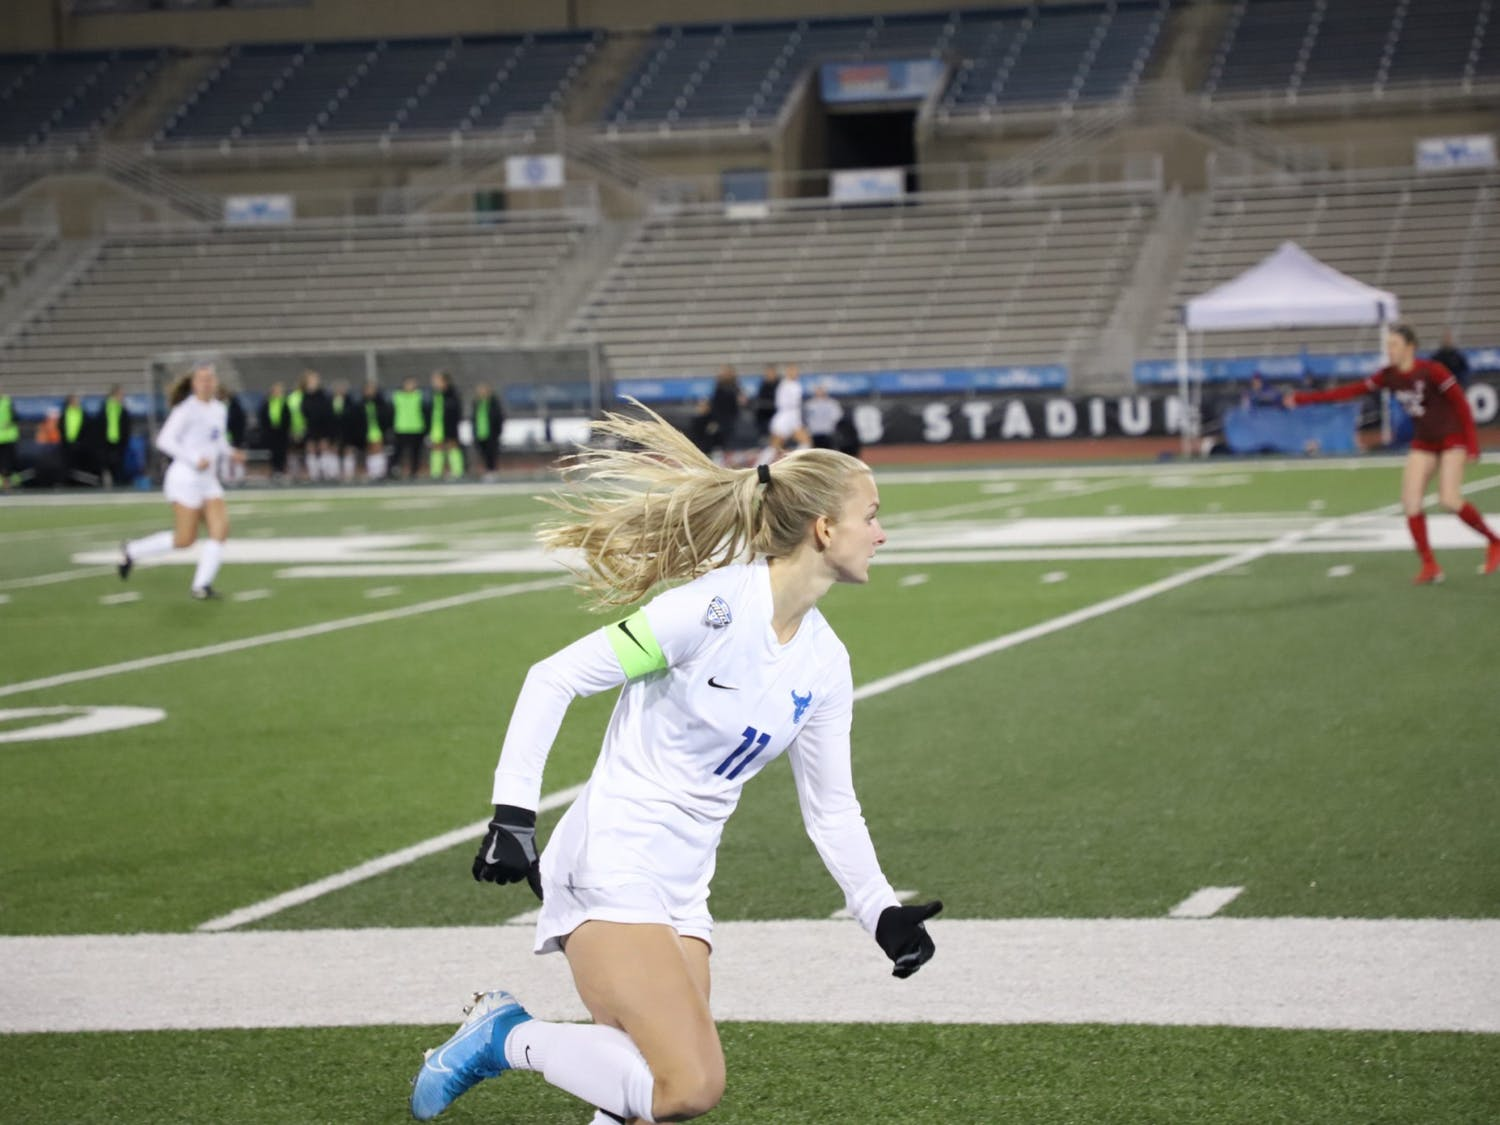 UB's women's soccer was defeated by Bowling Green during the MAC semifinals on Friday with a 2-1 loss.